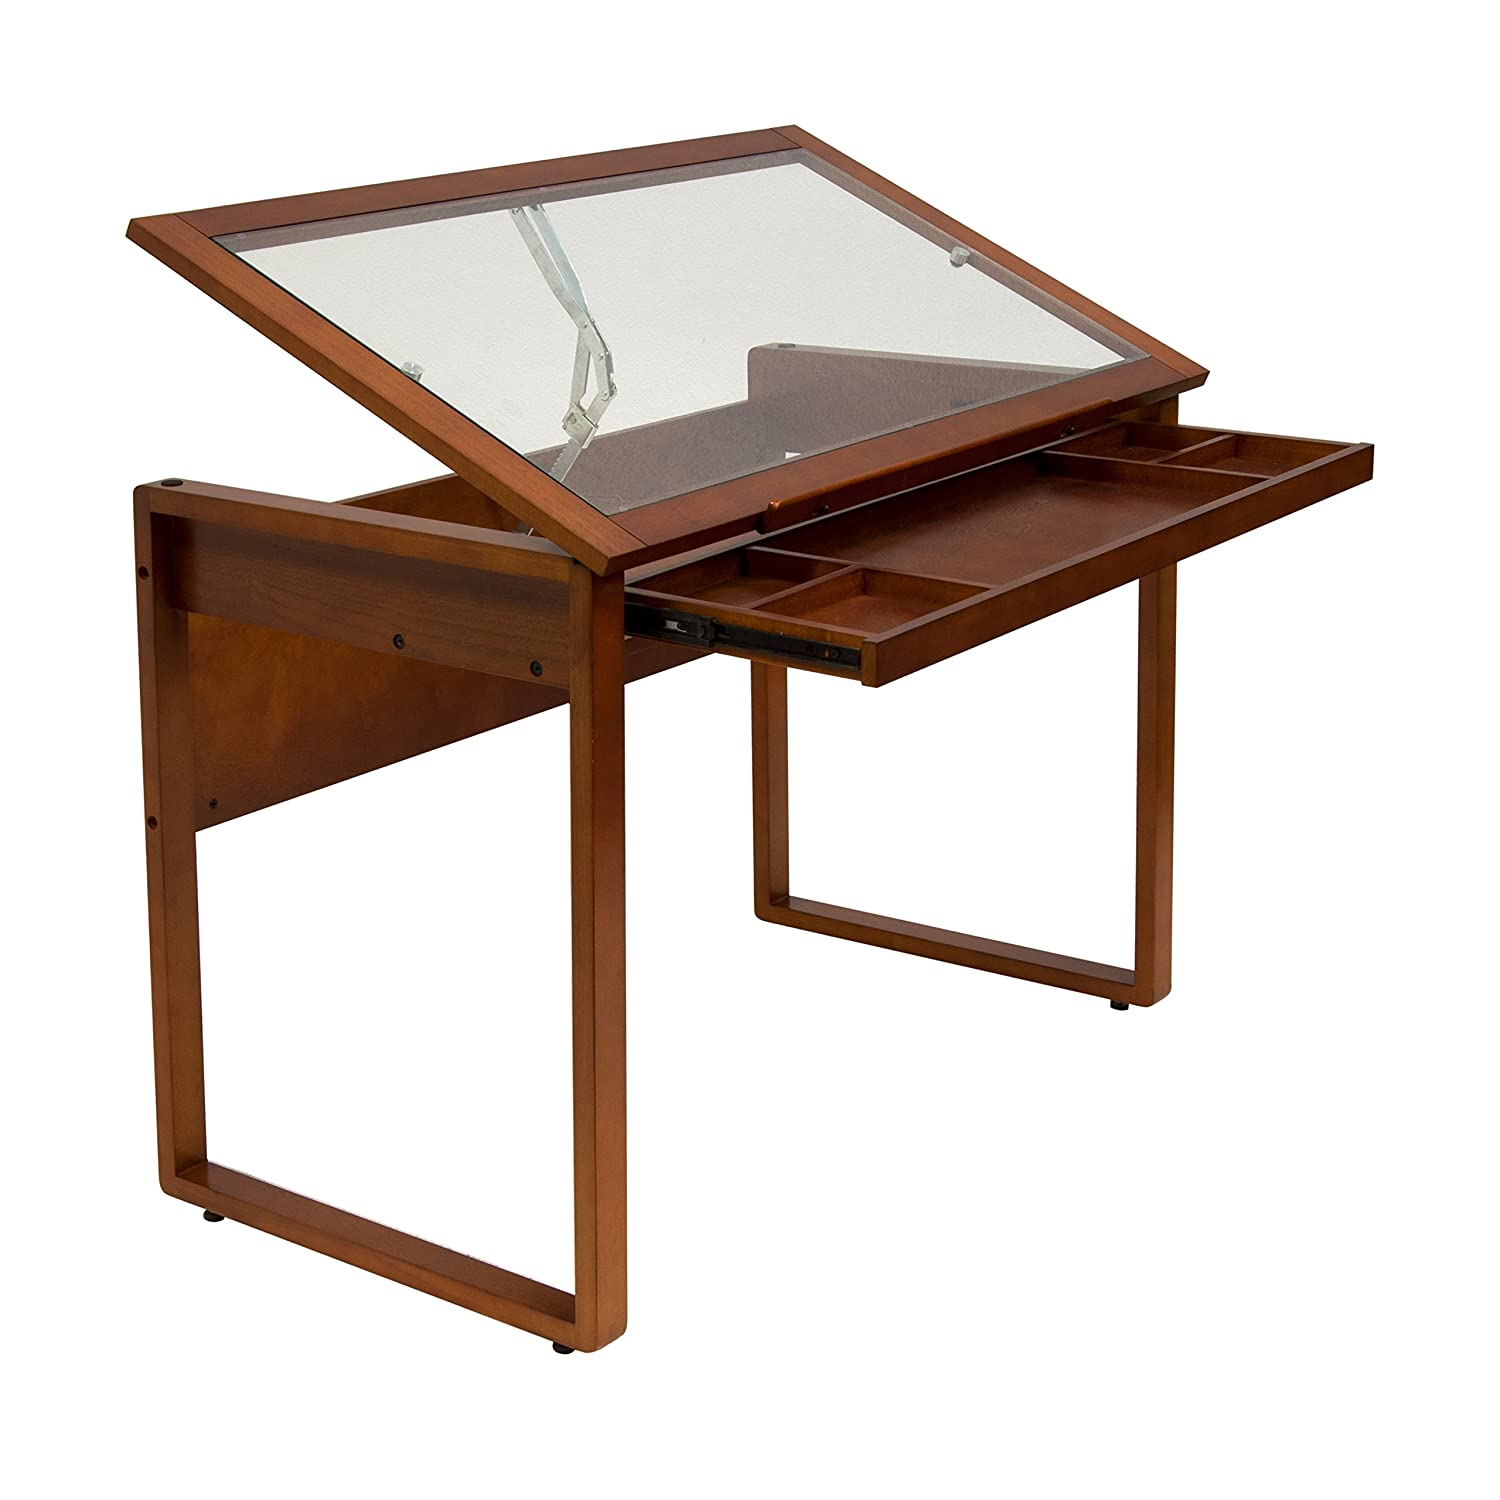 amazoncom studio designs ponderosa glass topped table in sonoma brown arts crafts u0026 sewing